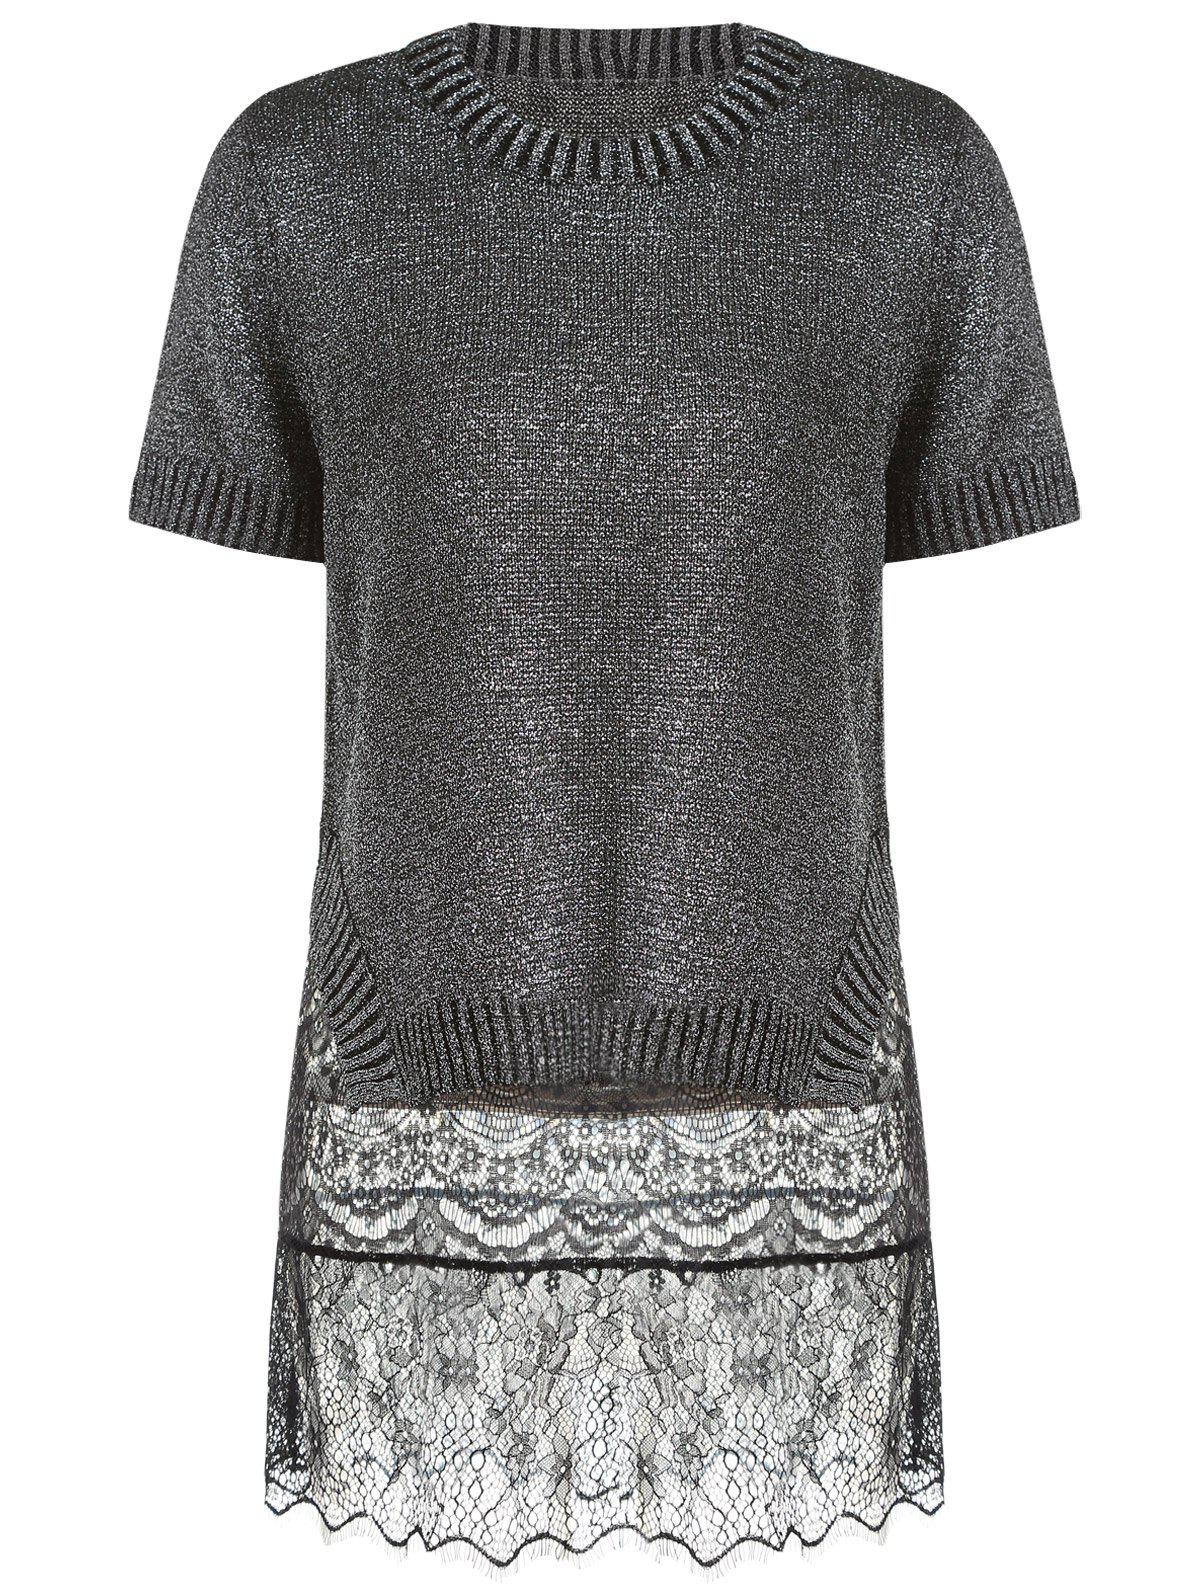 Trendy Women's Short Sleeve Furcal Sweater + Mini Lace Sundress Twinset - BLACK ONE SIZE(FIT SIZE XS TO M)